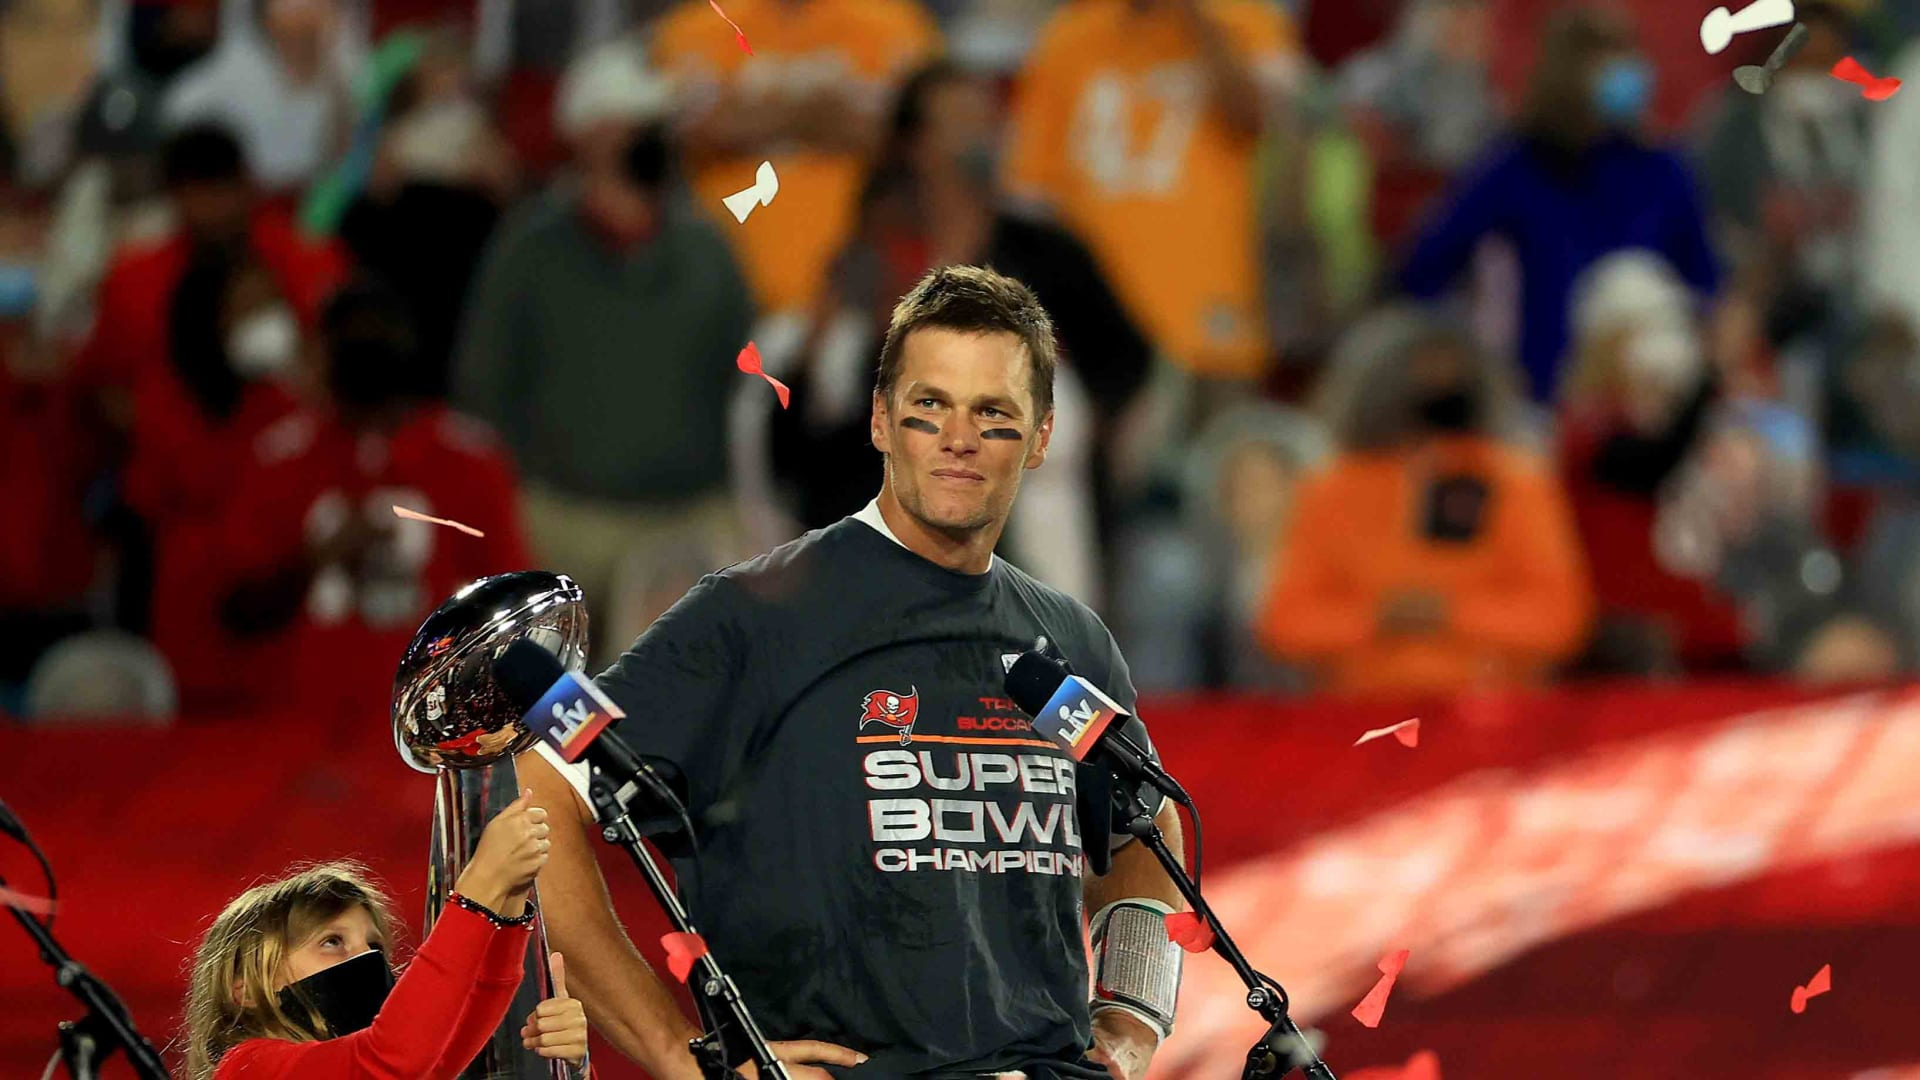 Tom Brady celebrates the Tampa Bay Buccaneers win over the Kansas City Chiefs in Super Bowl LV, as his daughter Vivian holds the Lombardi Trophy.